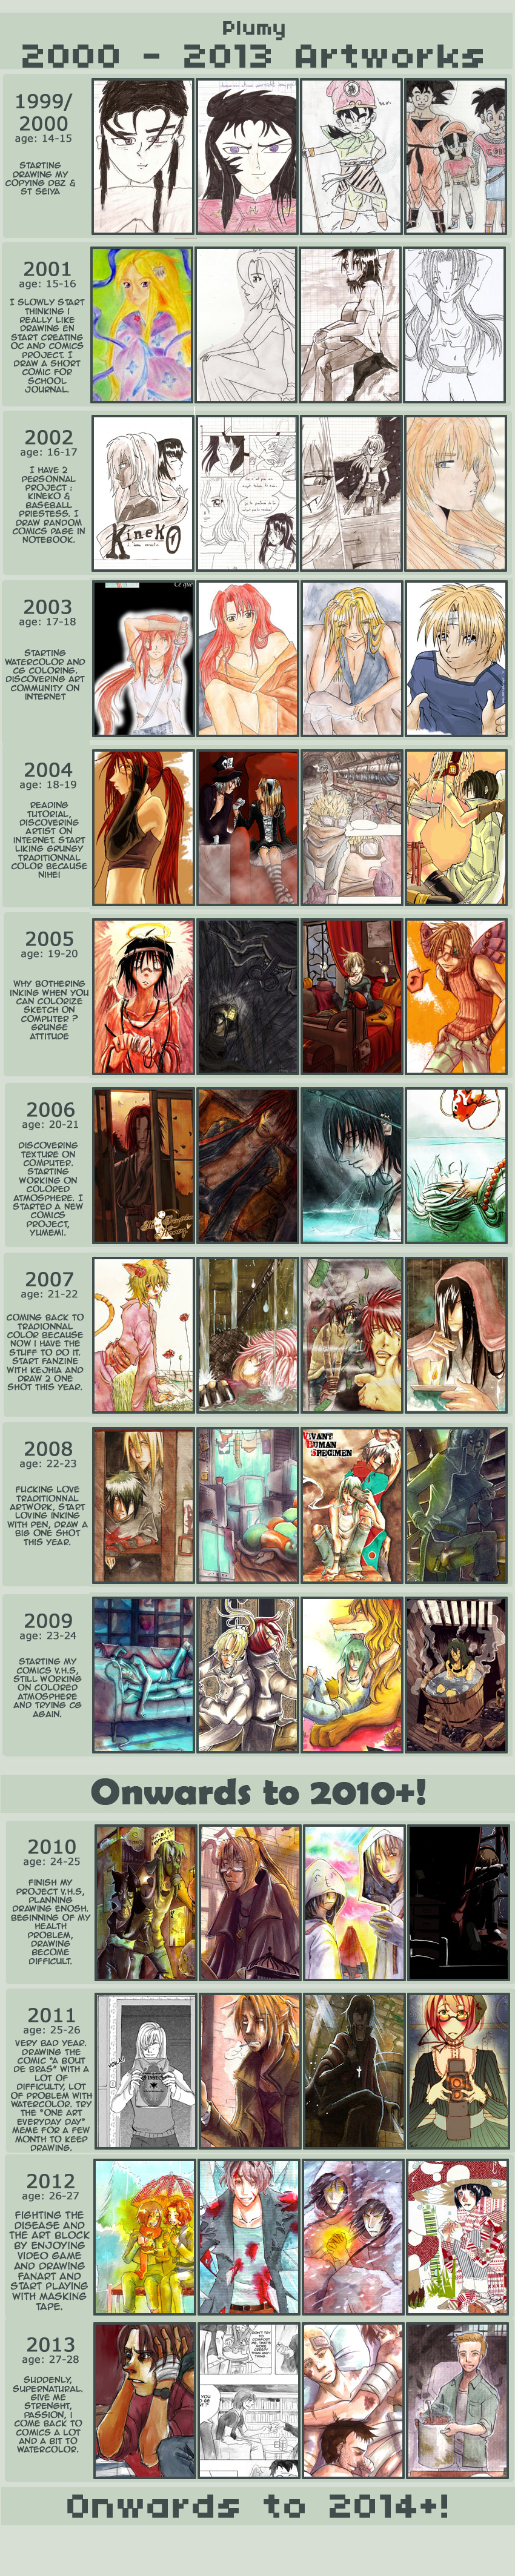 1999 - 2013 Improvement art meme by Resosphere